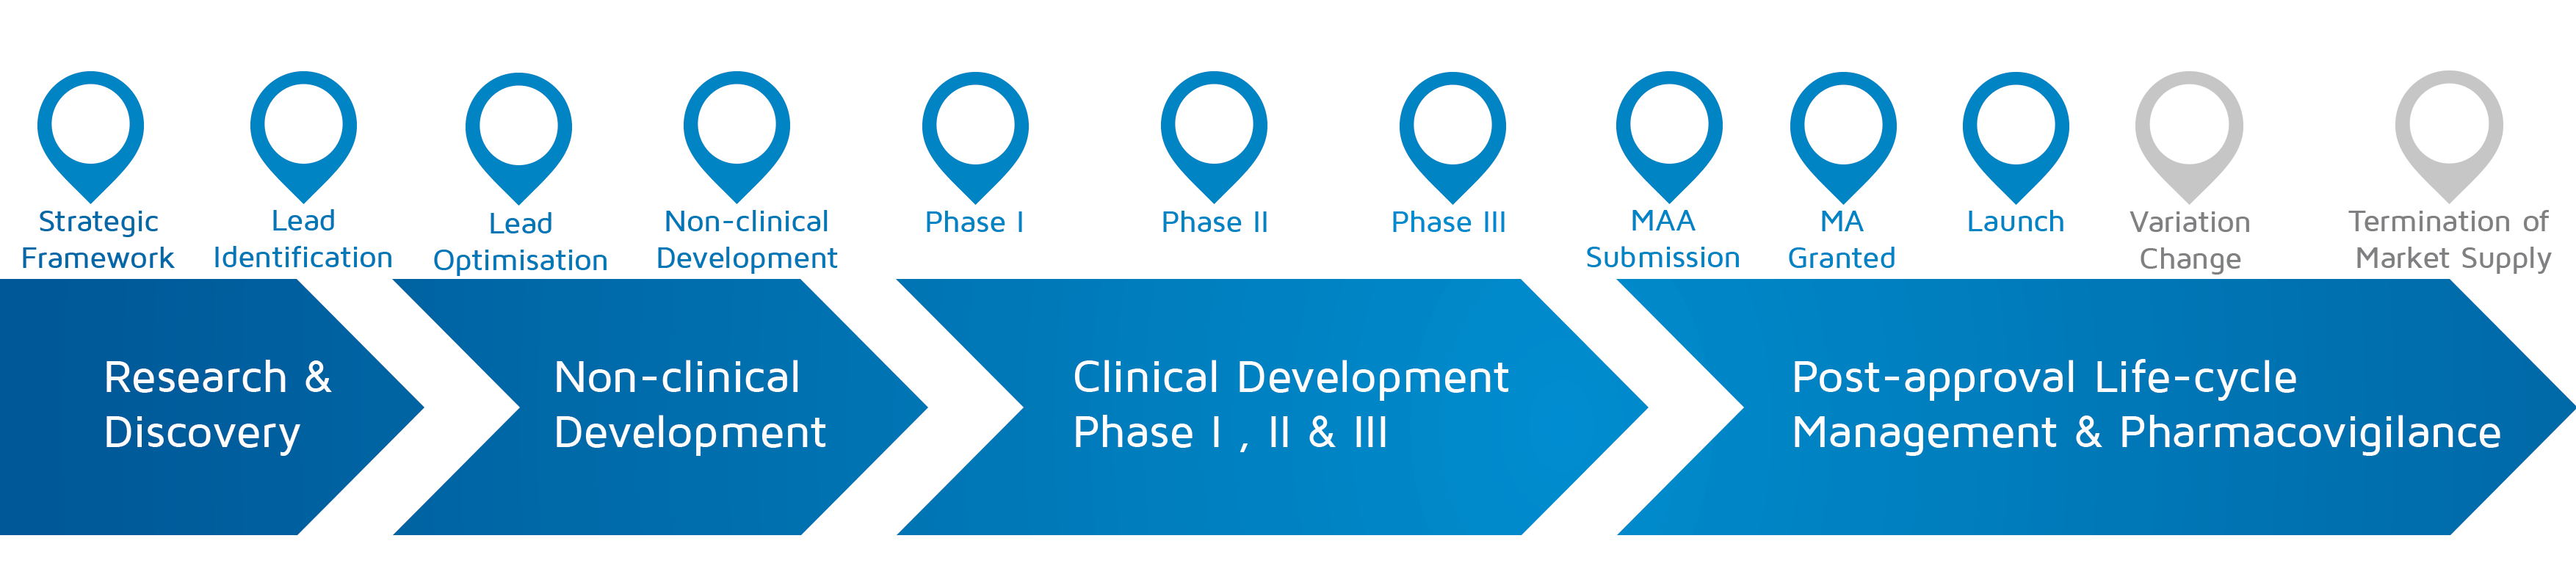 A visual representation of in which phase of medicines research and development process an activity takes place with strategic framework to Launch highlighted.